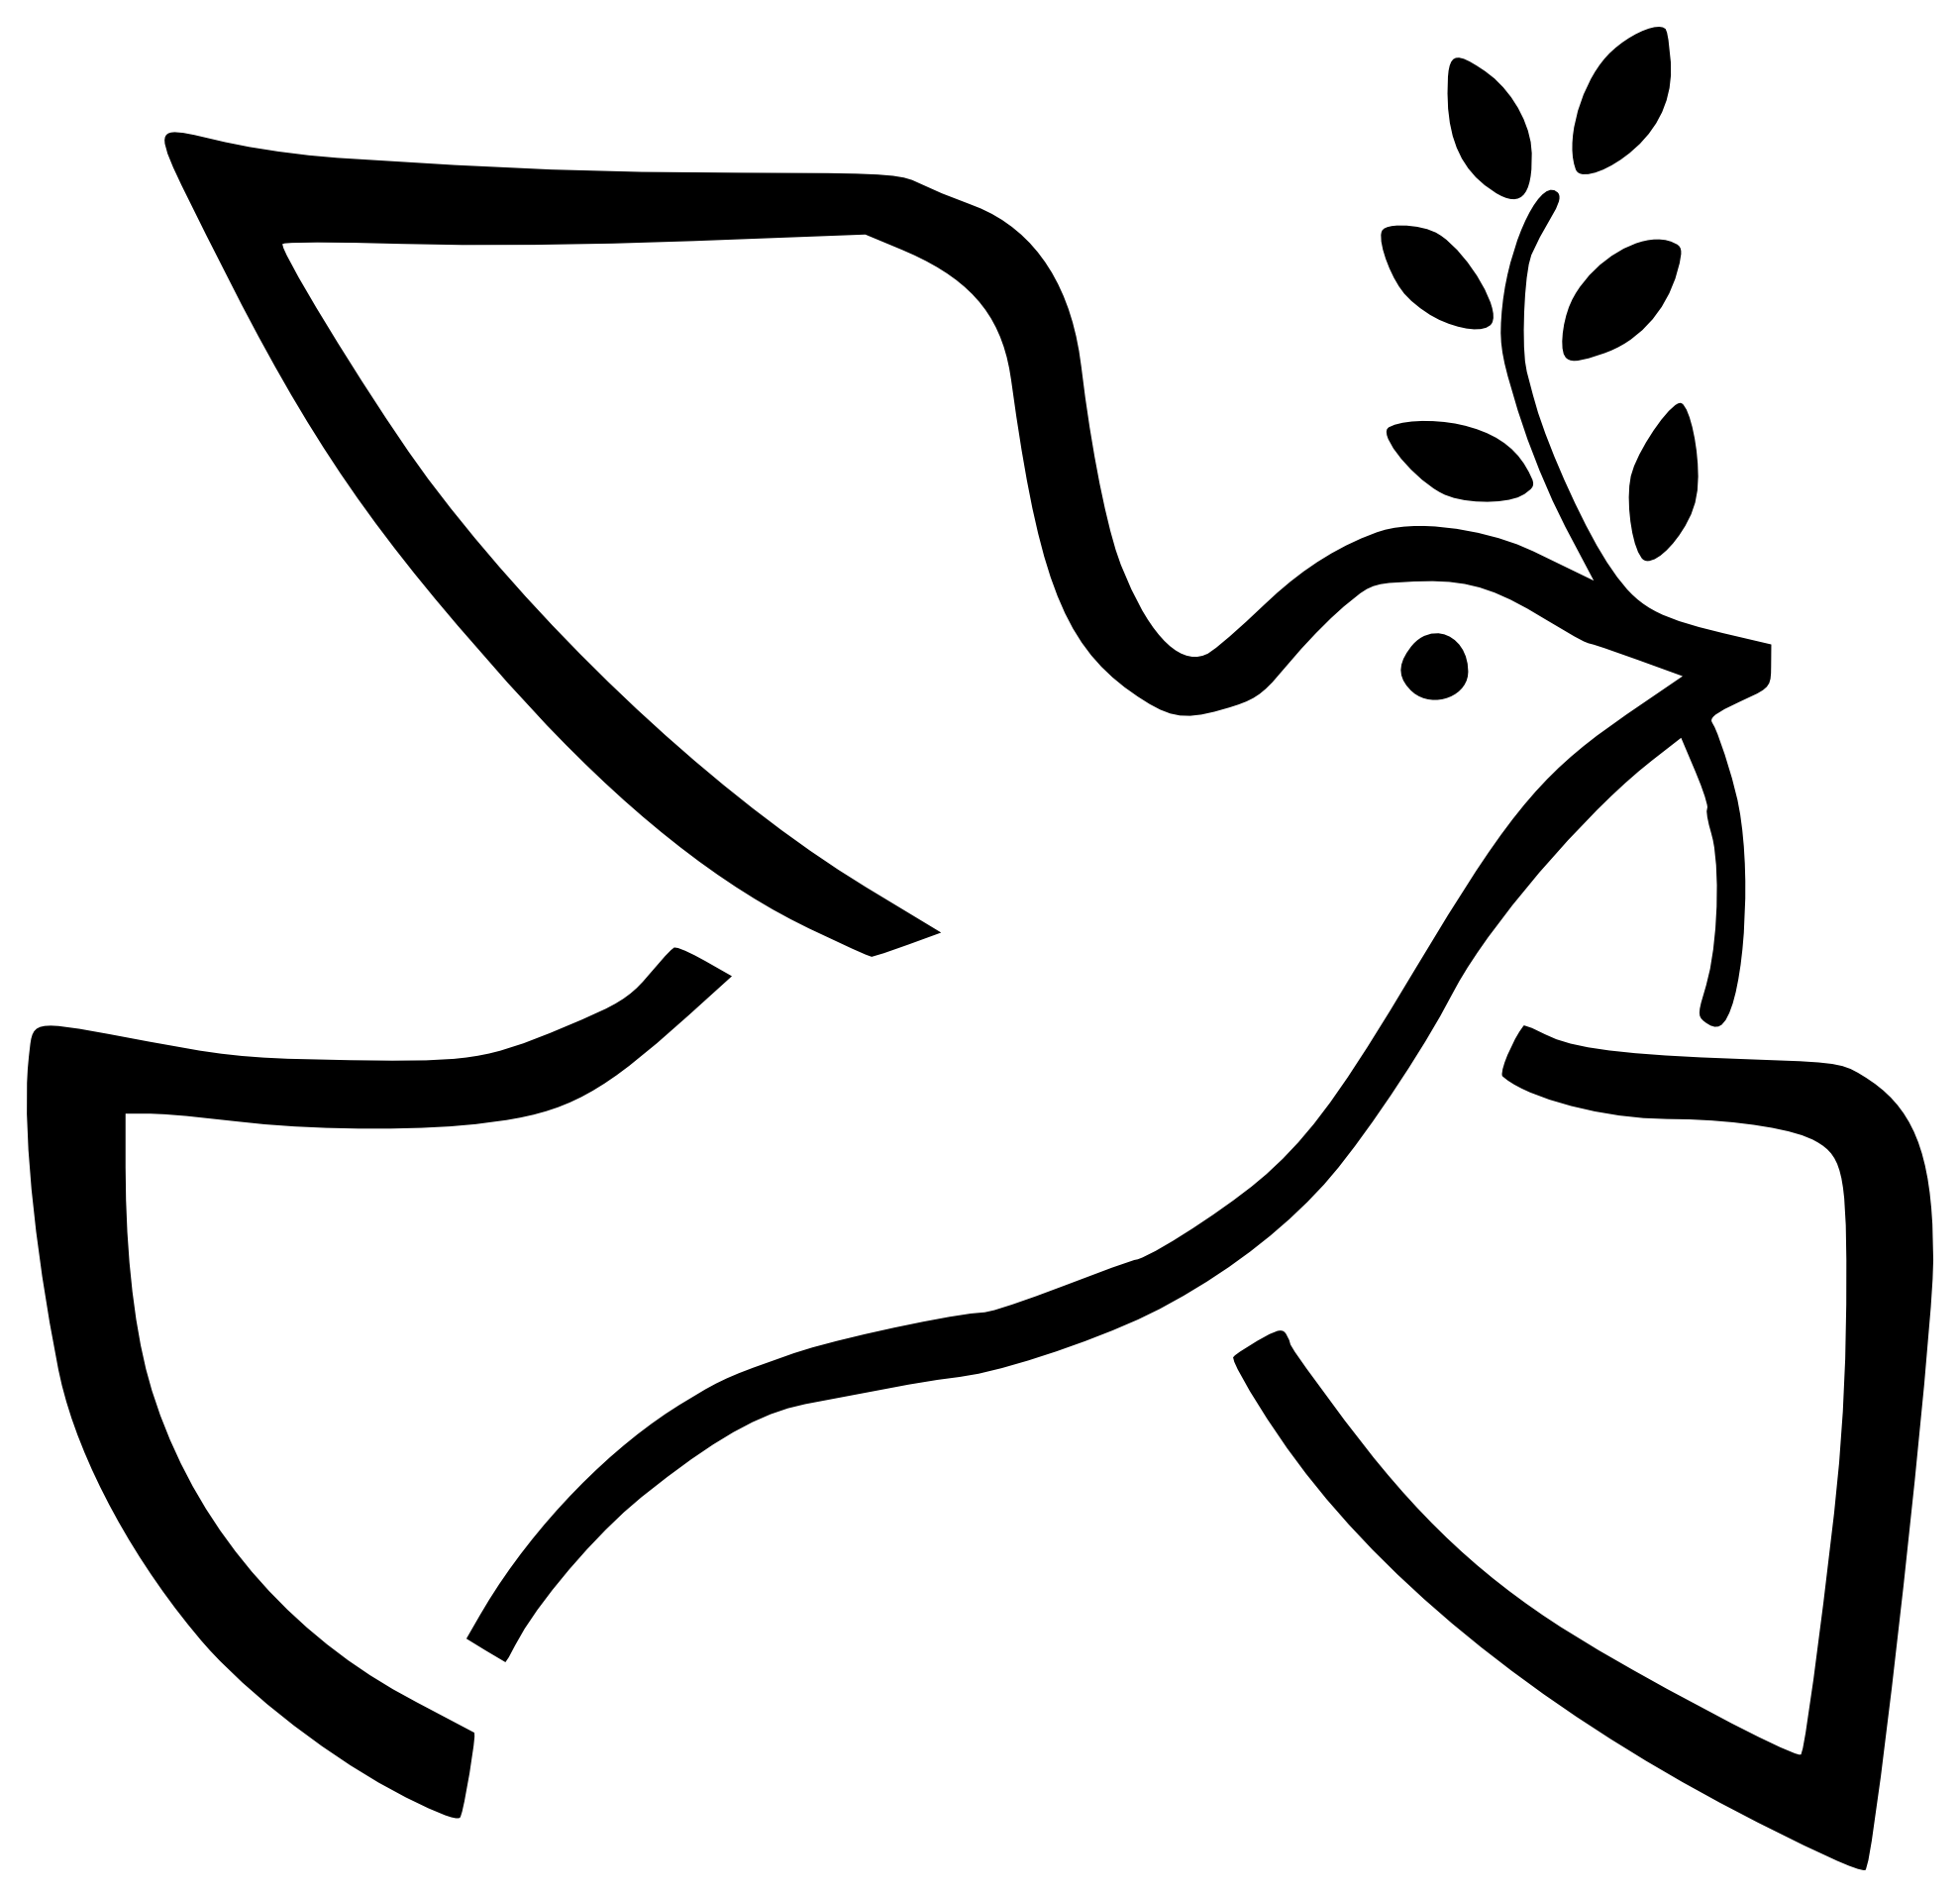 Christmas dove clipart clipart royalty free stock Dove black and white clipart - ClipartFest | ideas - peace dove ... clipart royalty free stock